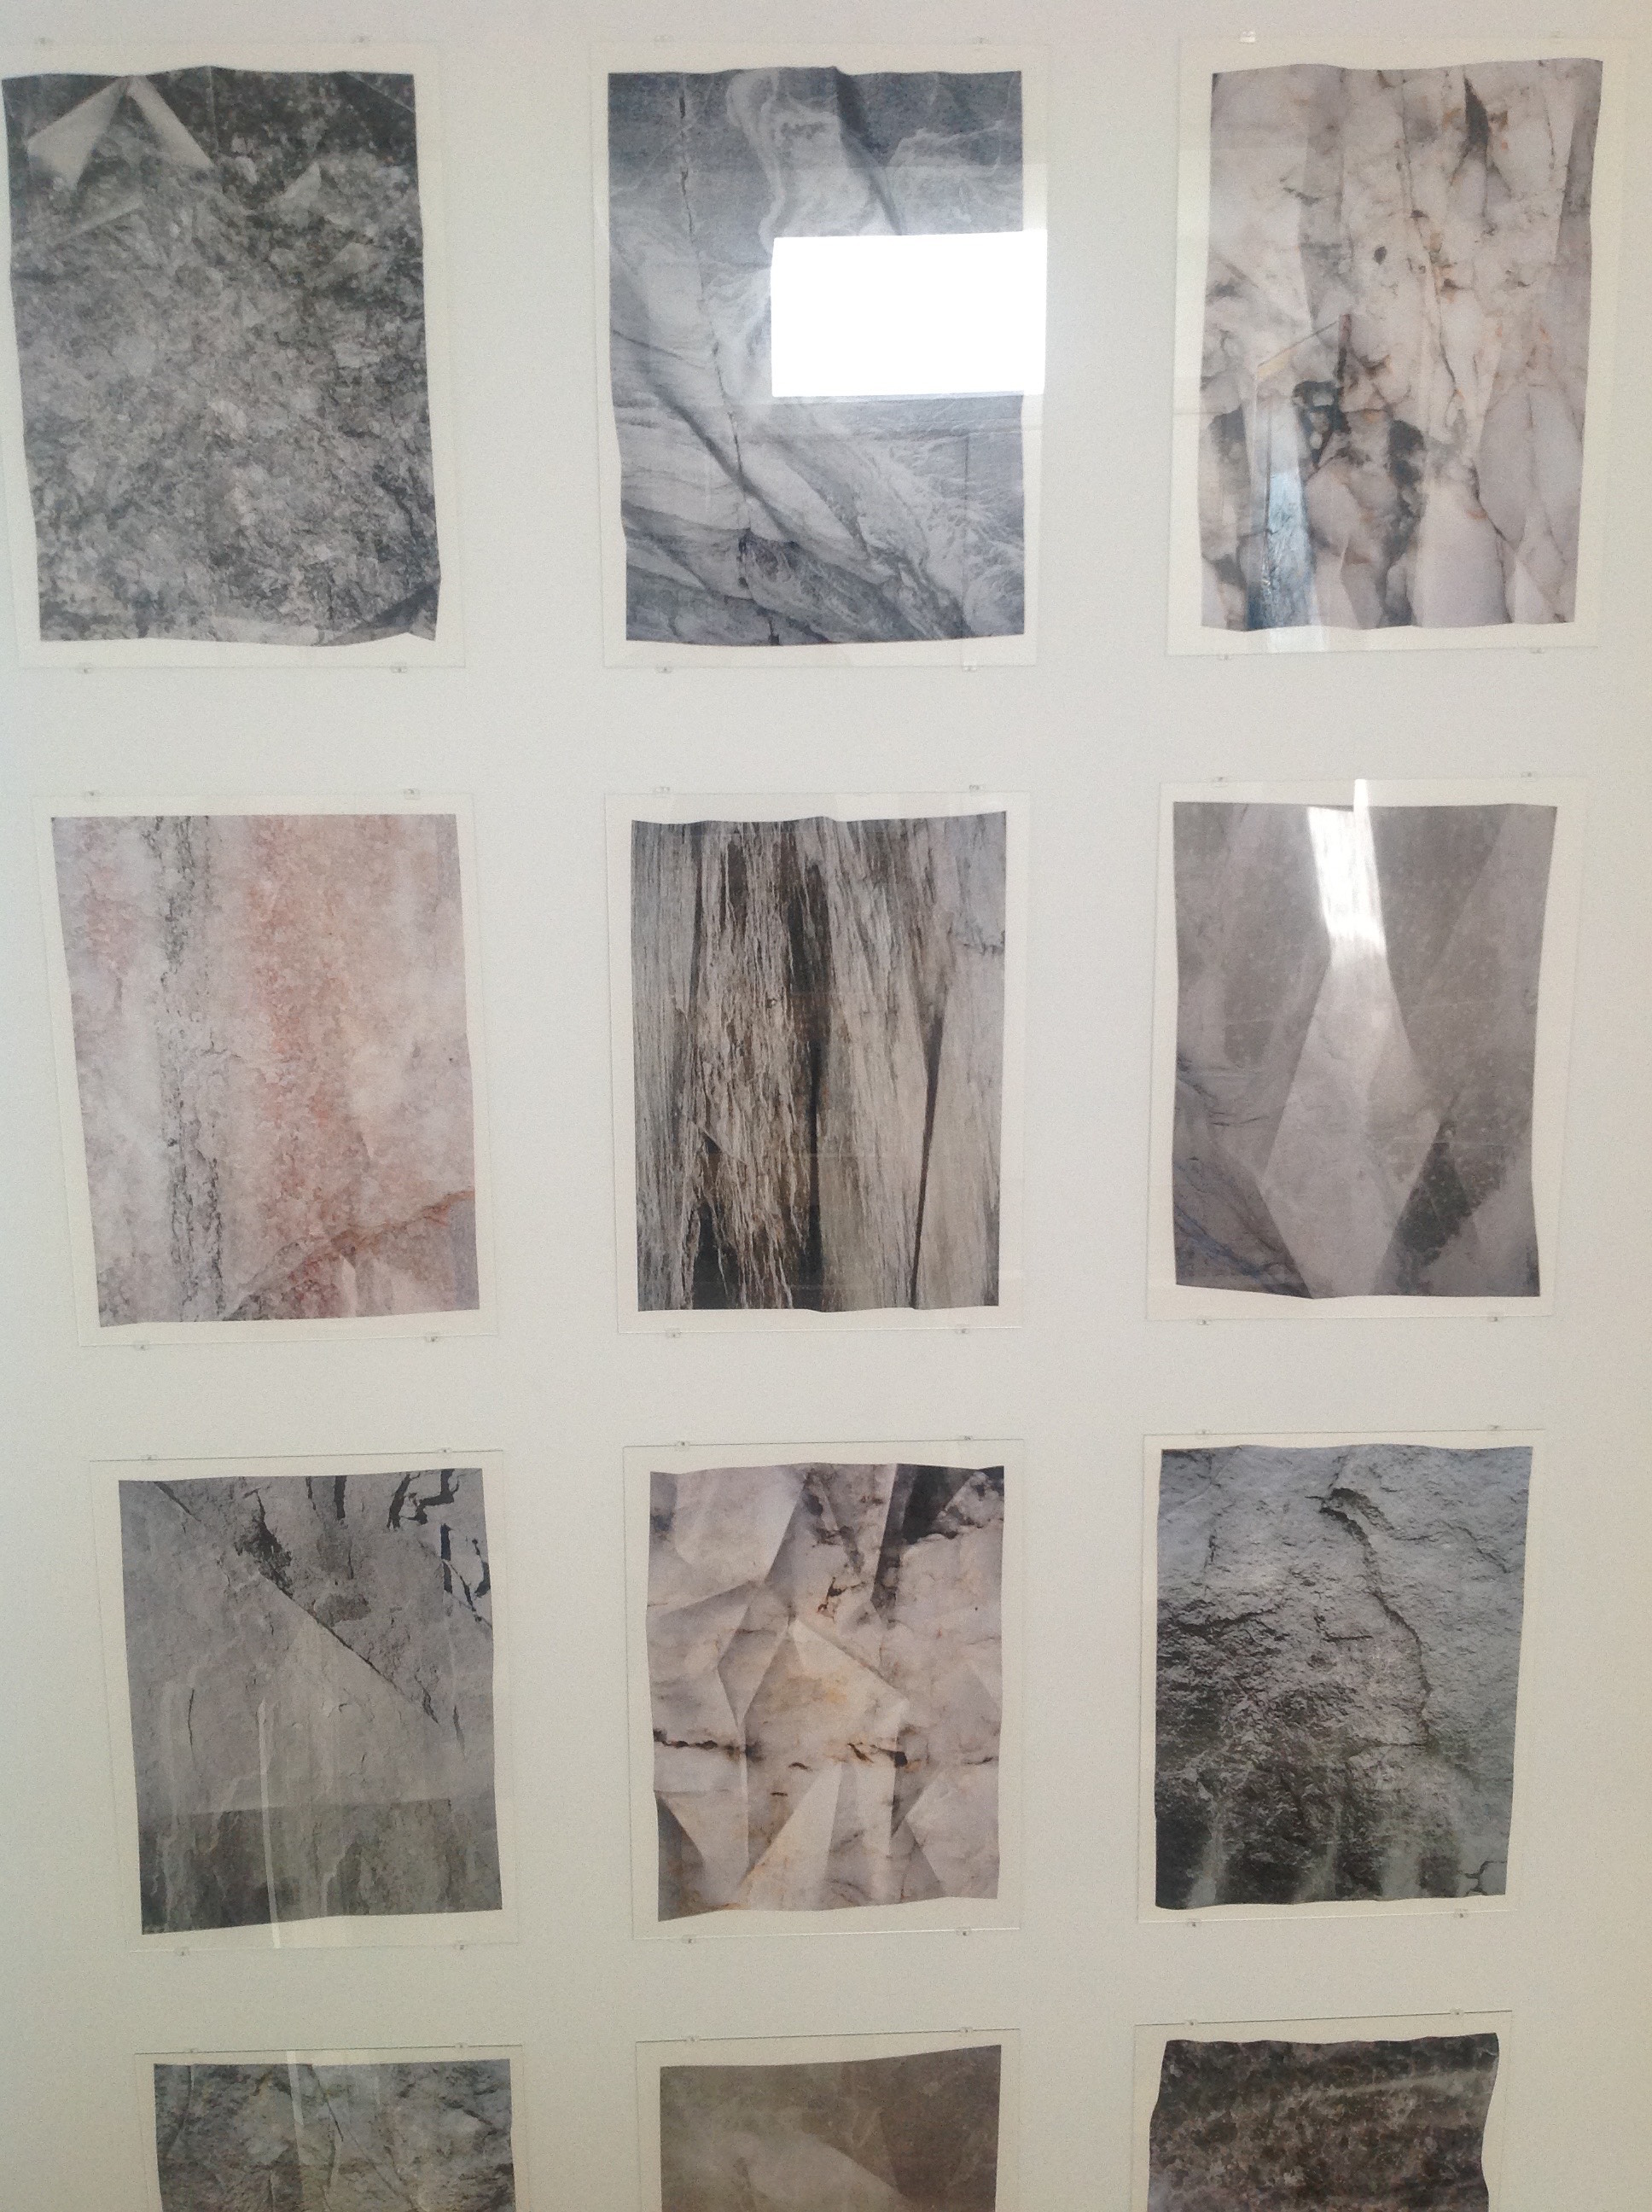 Sibylle Eimermacher has been inspired by the stones in quarries of Scandinavia, producing new images in photography and folded paper which interpret the durability of stone through a fragile and delicate medium.